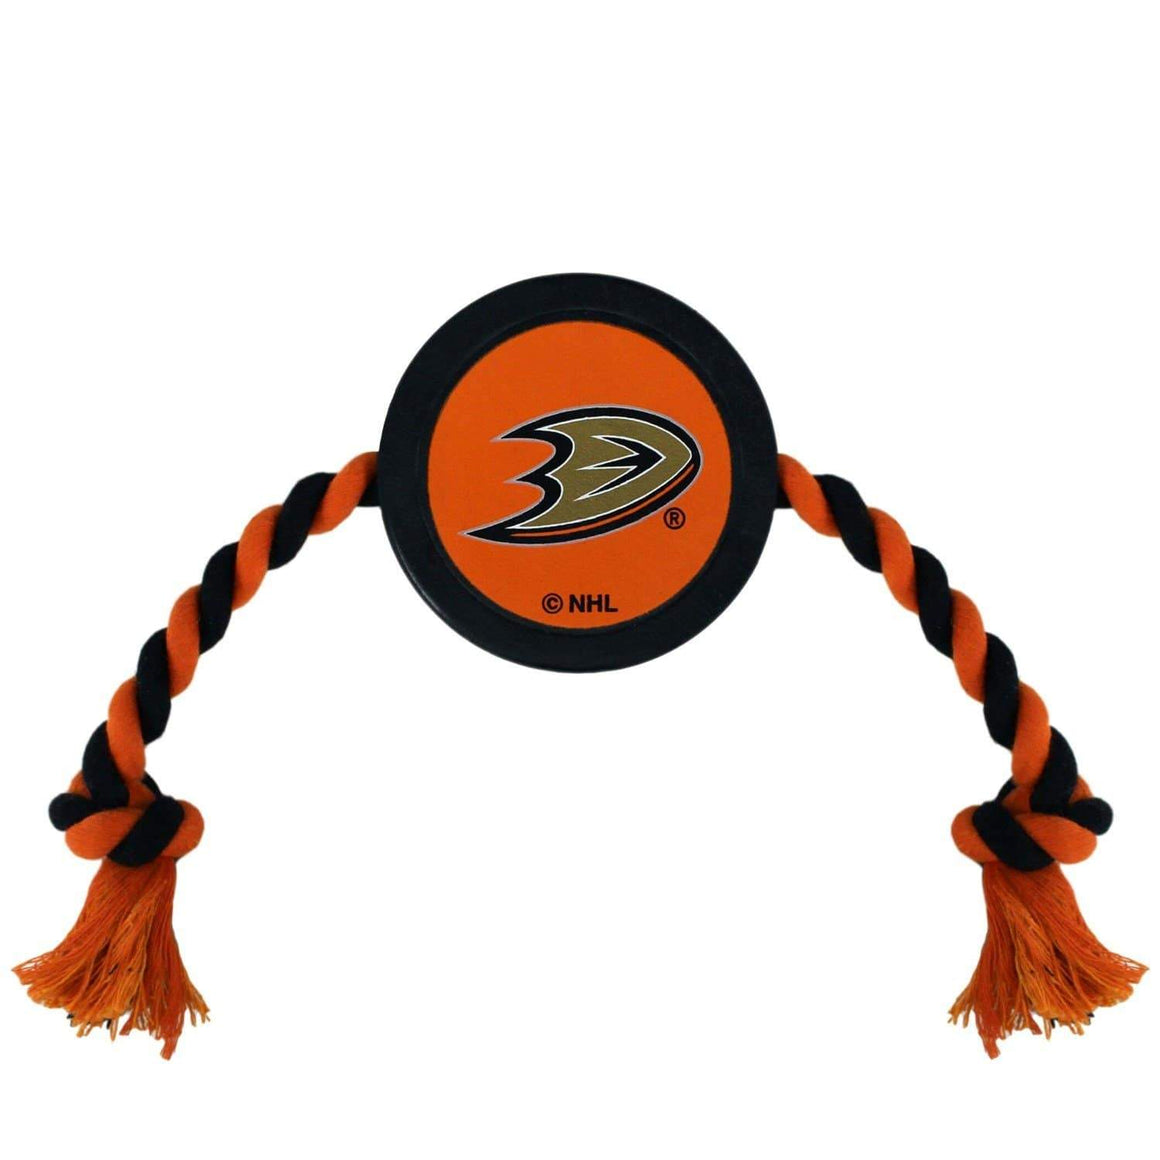 Pets First Dog-products NHL Anaheim Ducks Pet Hockey Puck Rope Toy